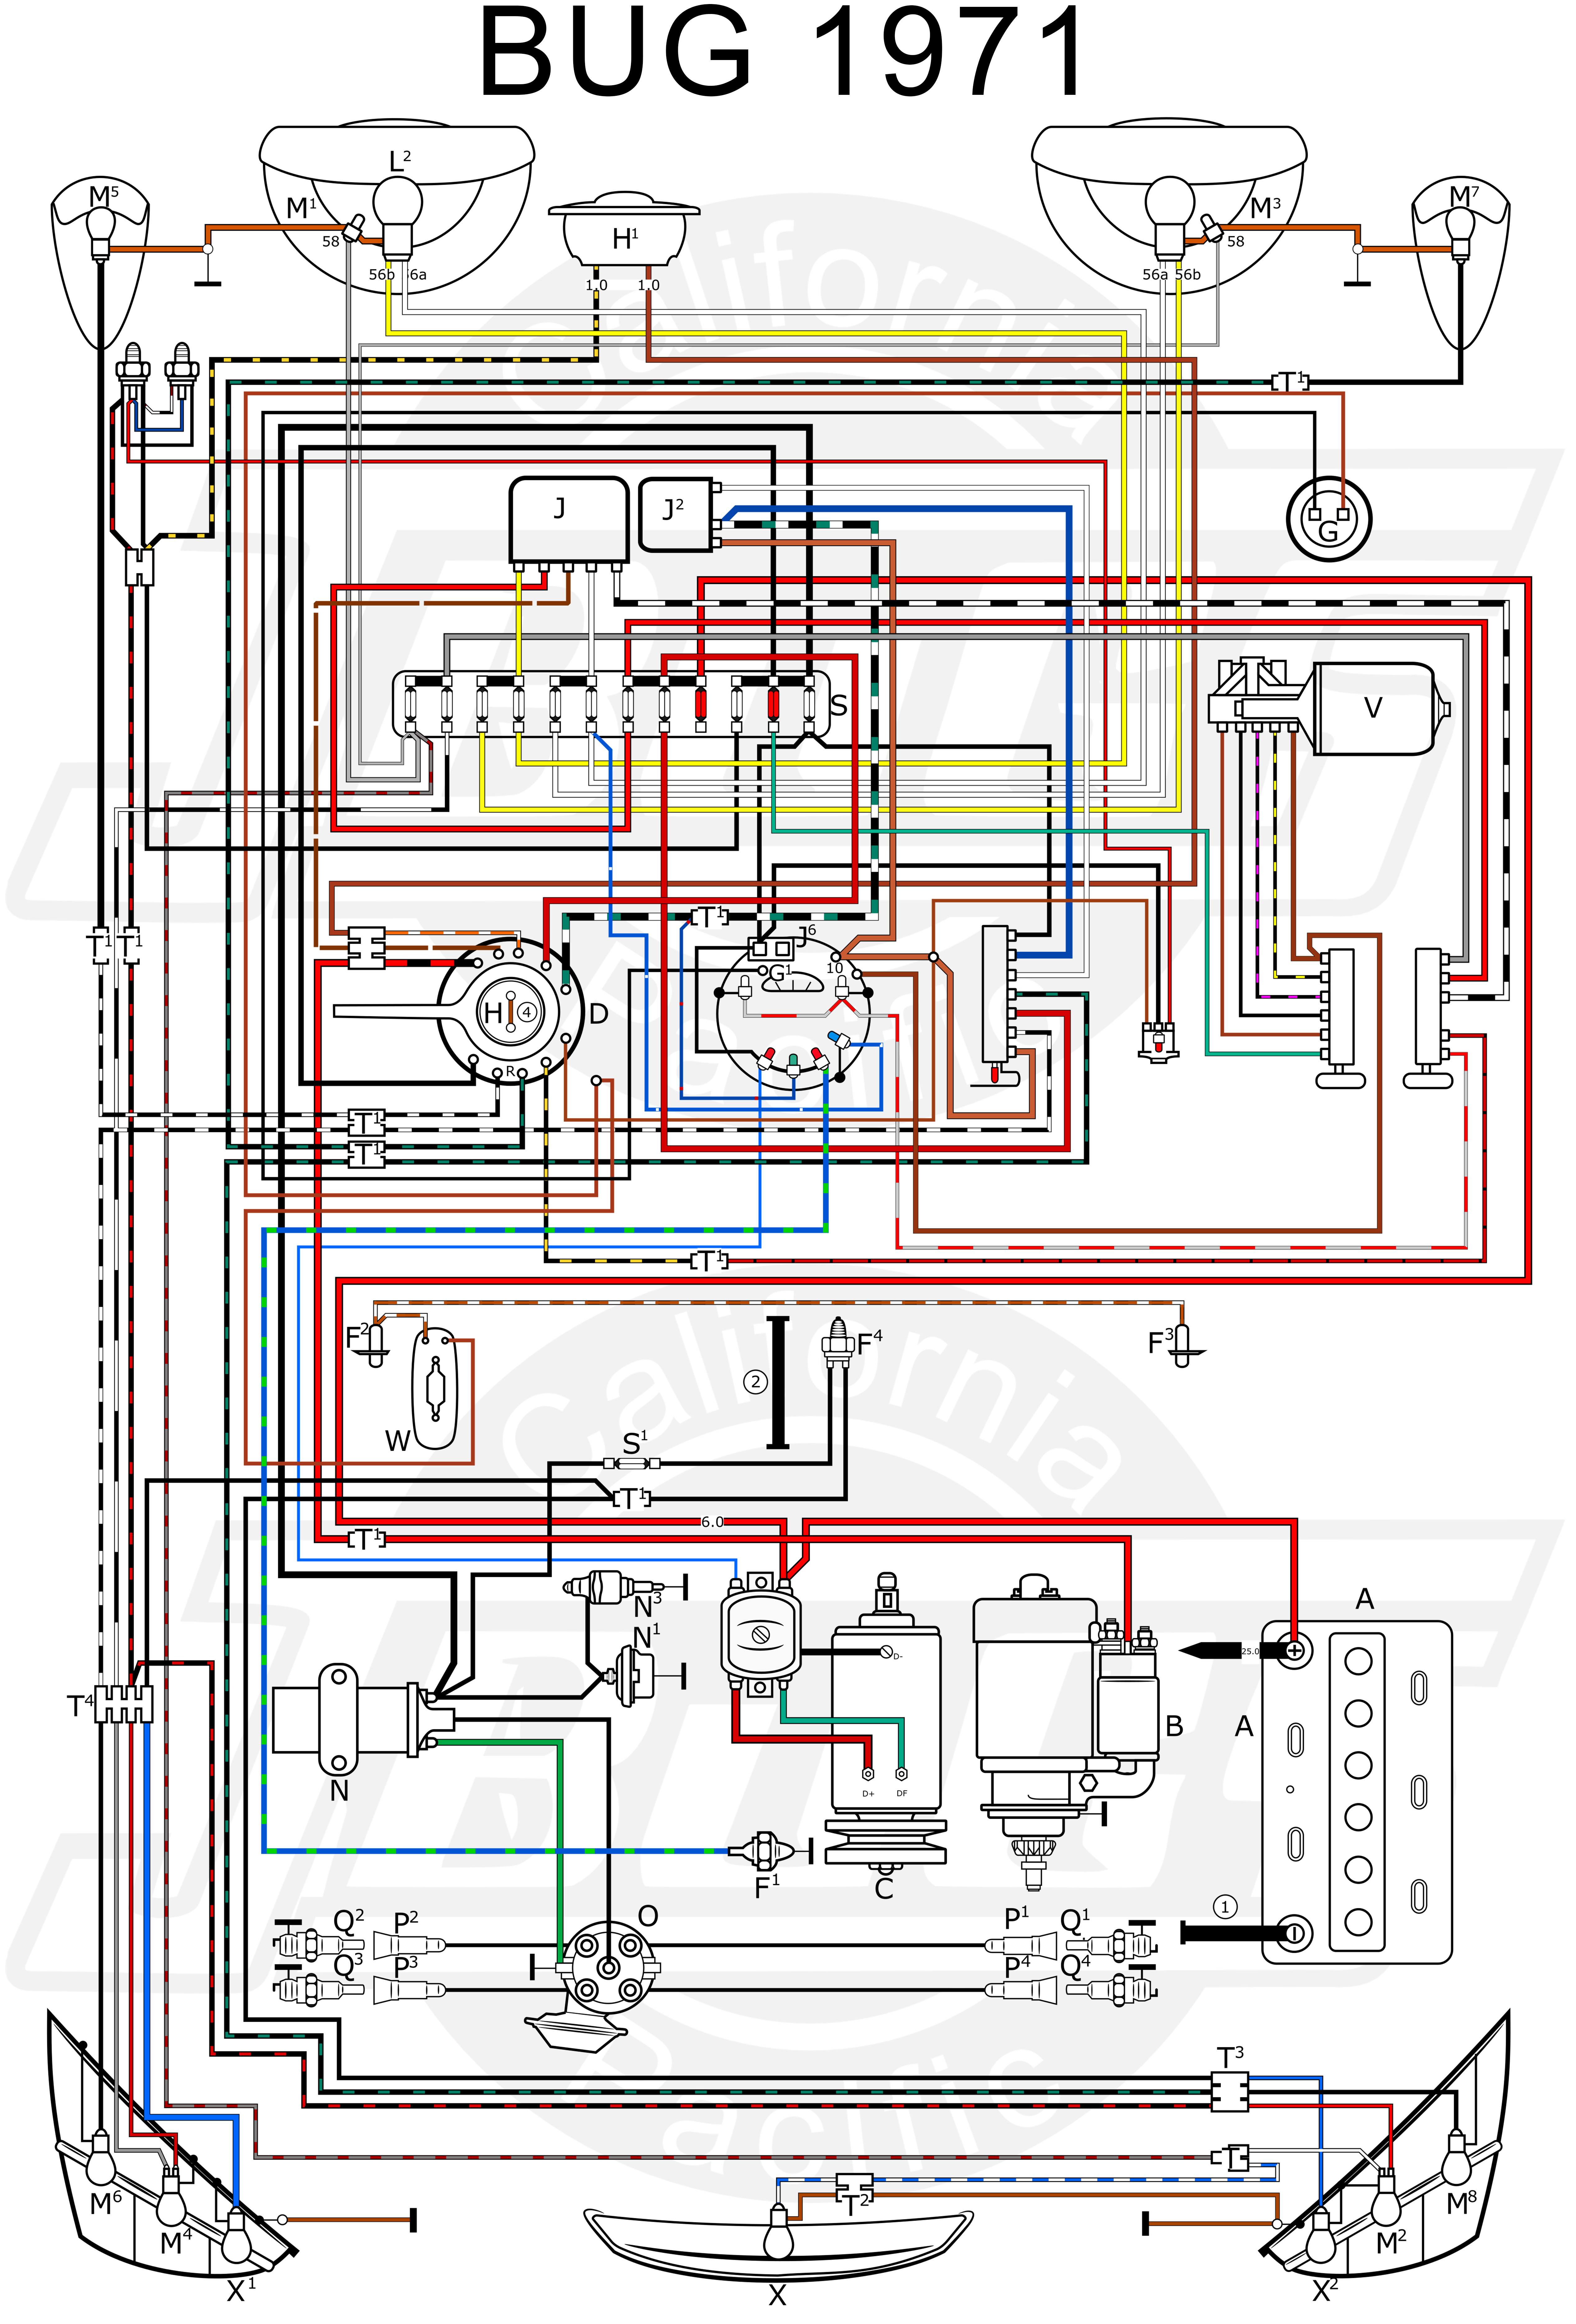 vw beetle wiring diagram image wiring vw beetle wiring diagram 1971 vw auto wiring diagram schematic on 1971 vw beetle wiring diagram